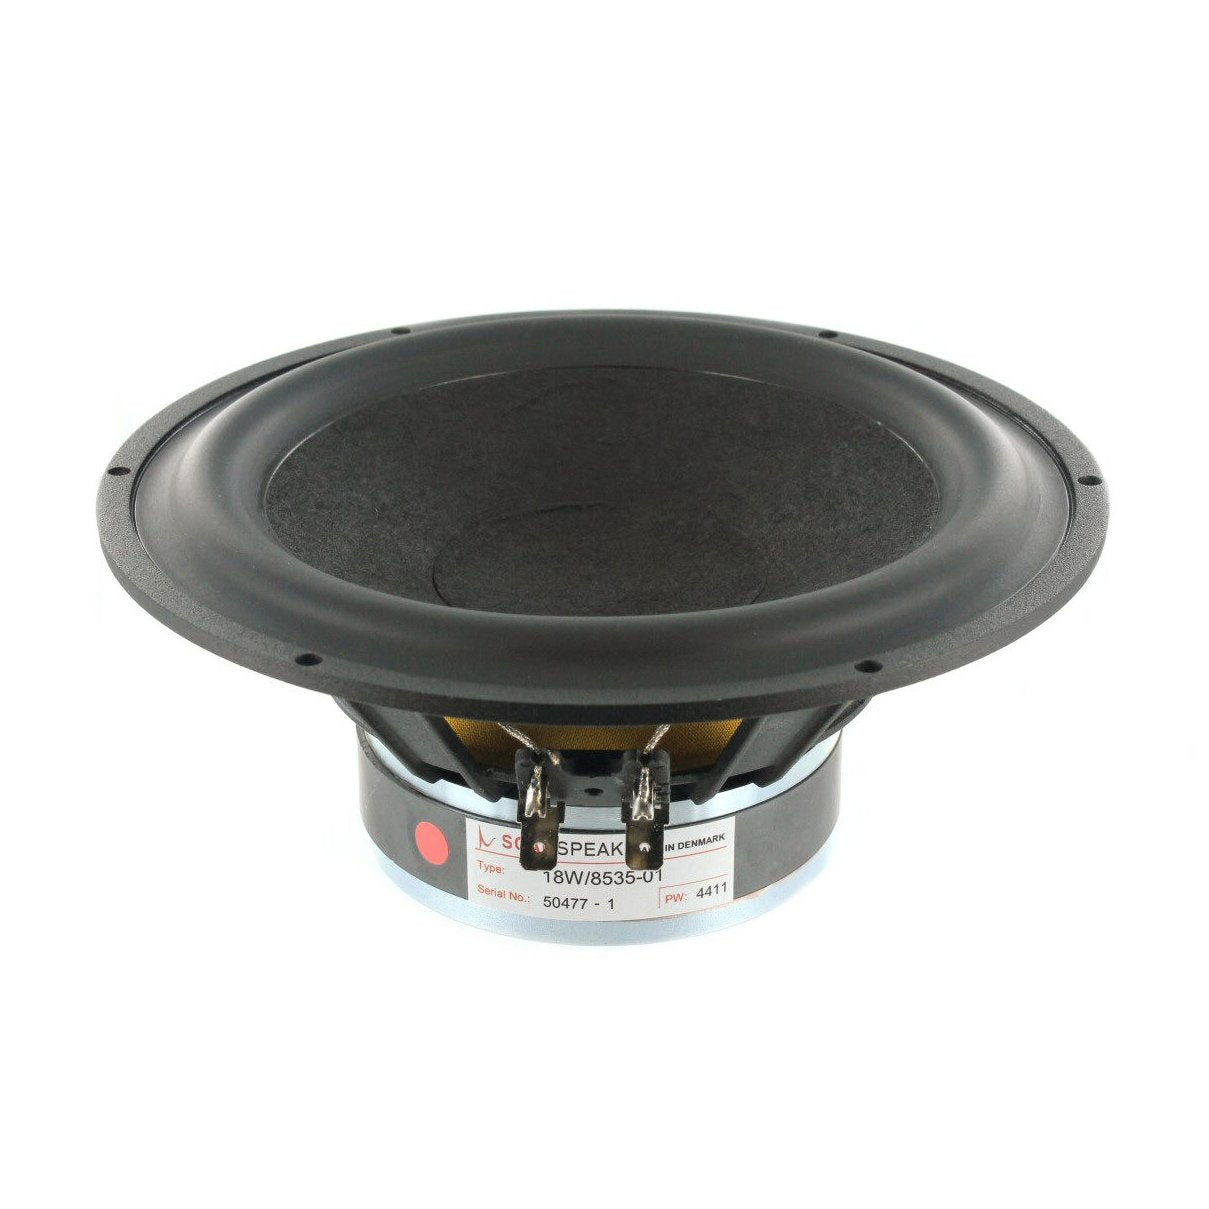 Scanspeak Classic 18W/8535-01 Midwoofer - Willys-Hifi Ltd